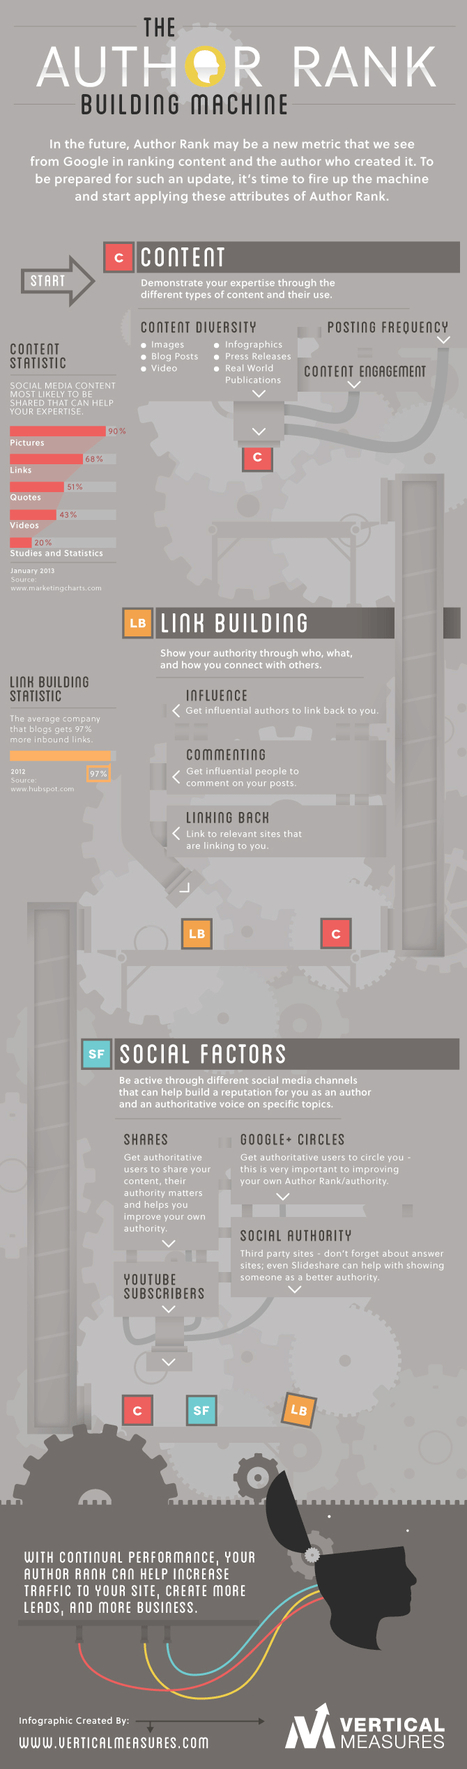 The Author Rank Building Machine Infographic by Vertical Measures   Everything Marketing You Can Think Of   Scoop.it